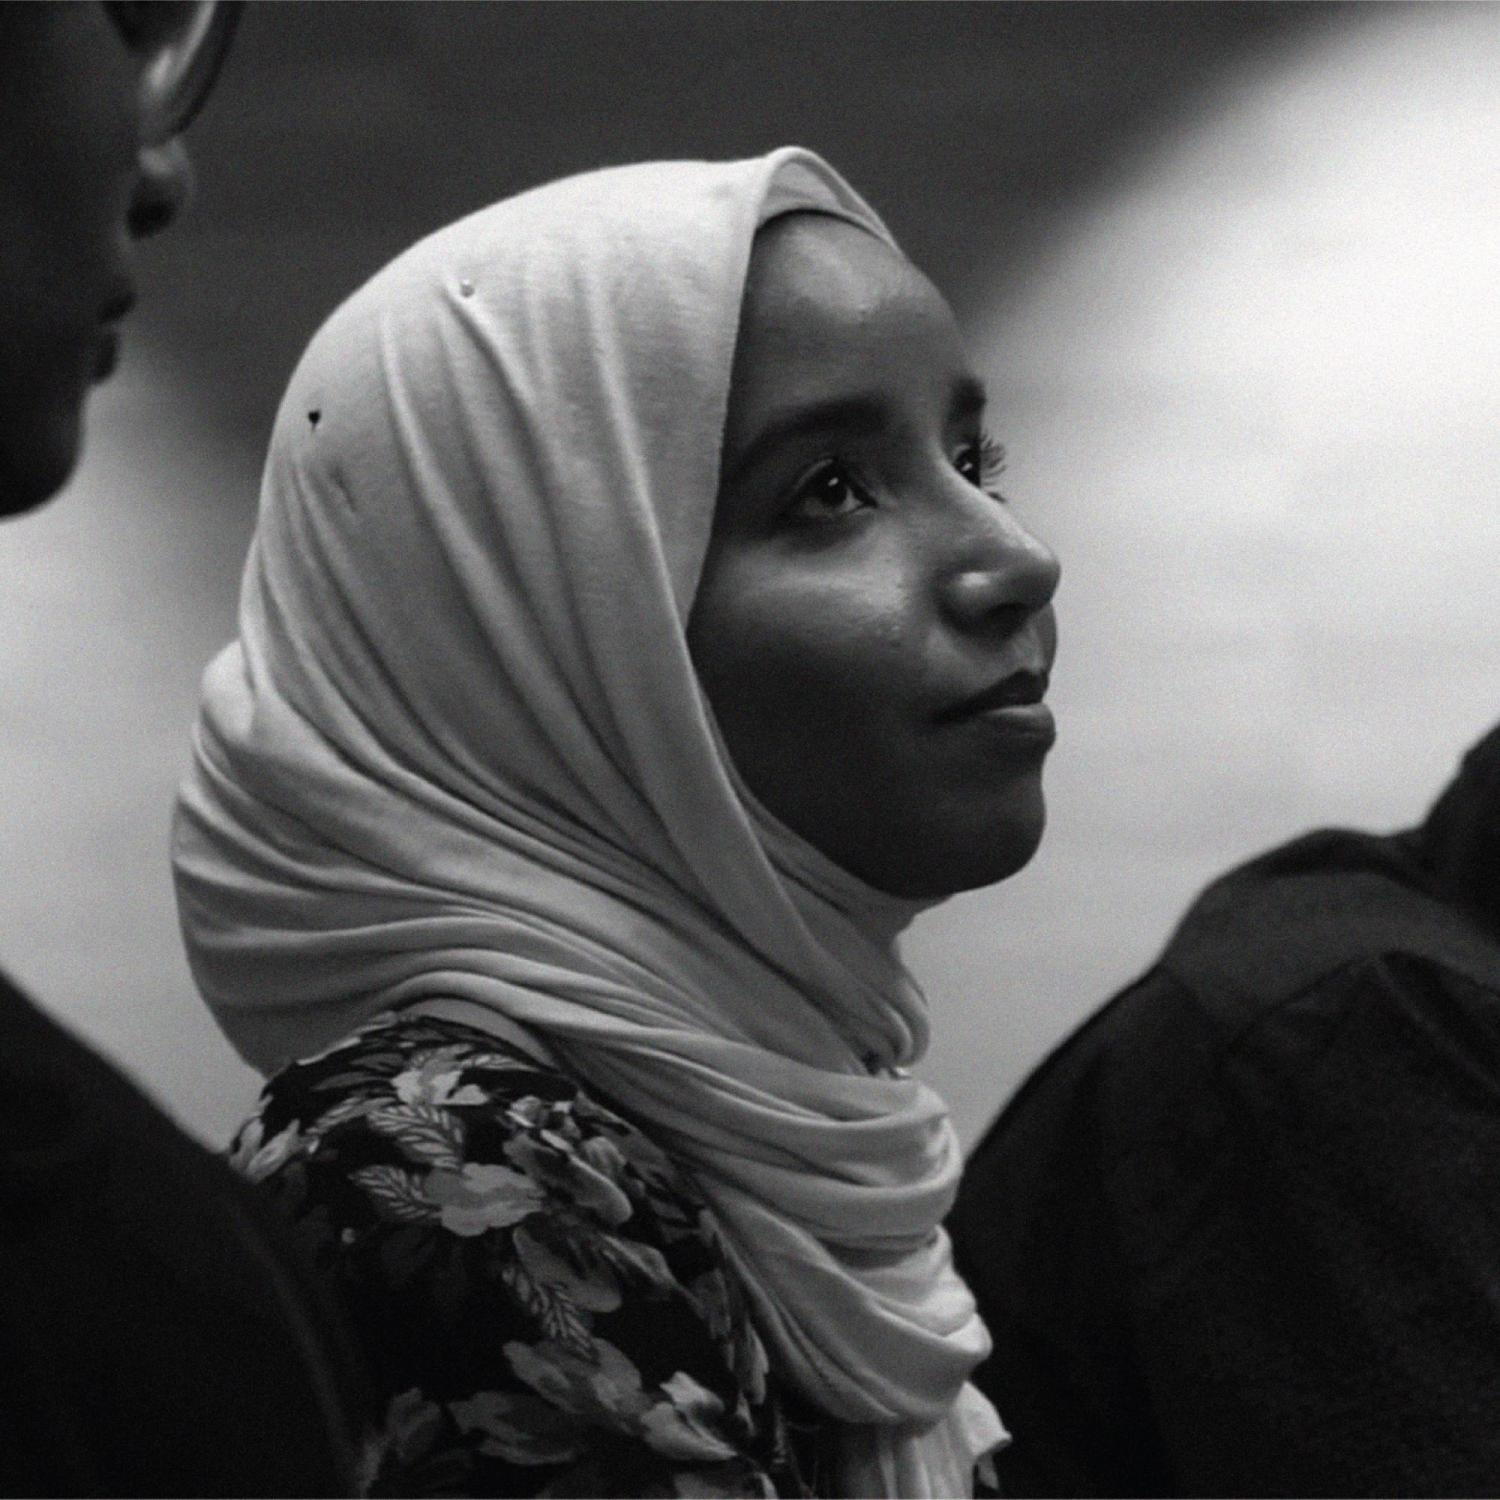 A Sudanese woman looks up into the distance.